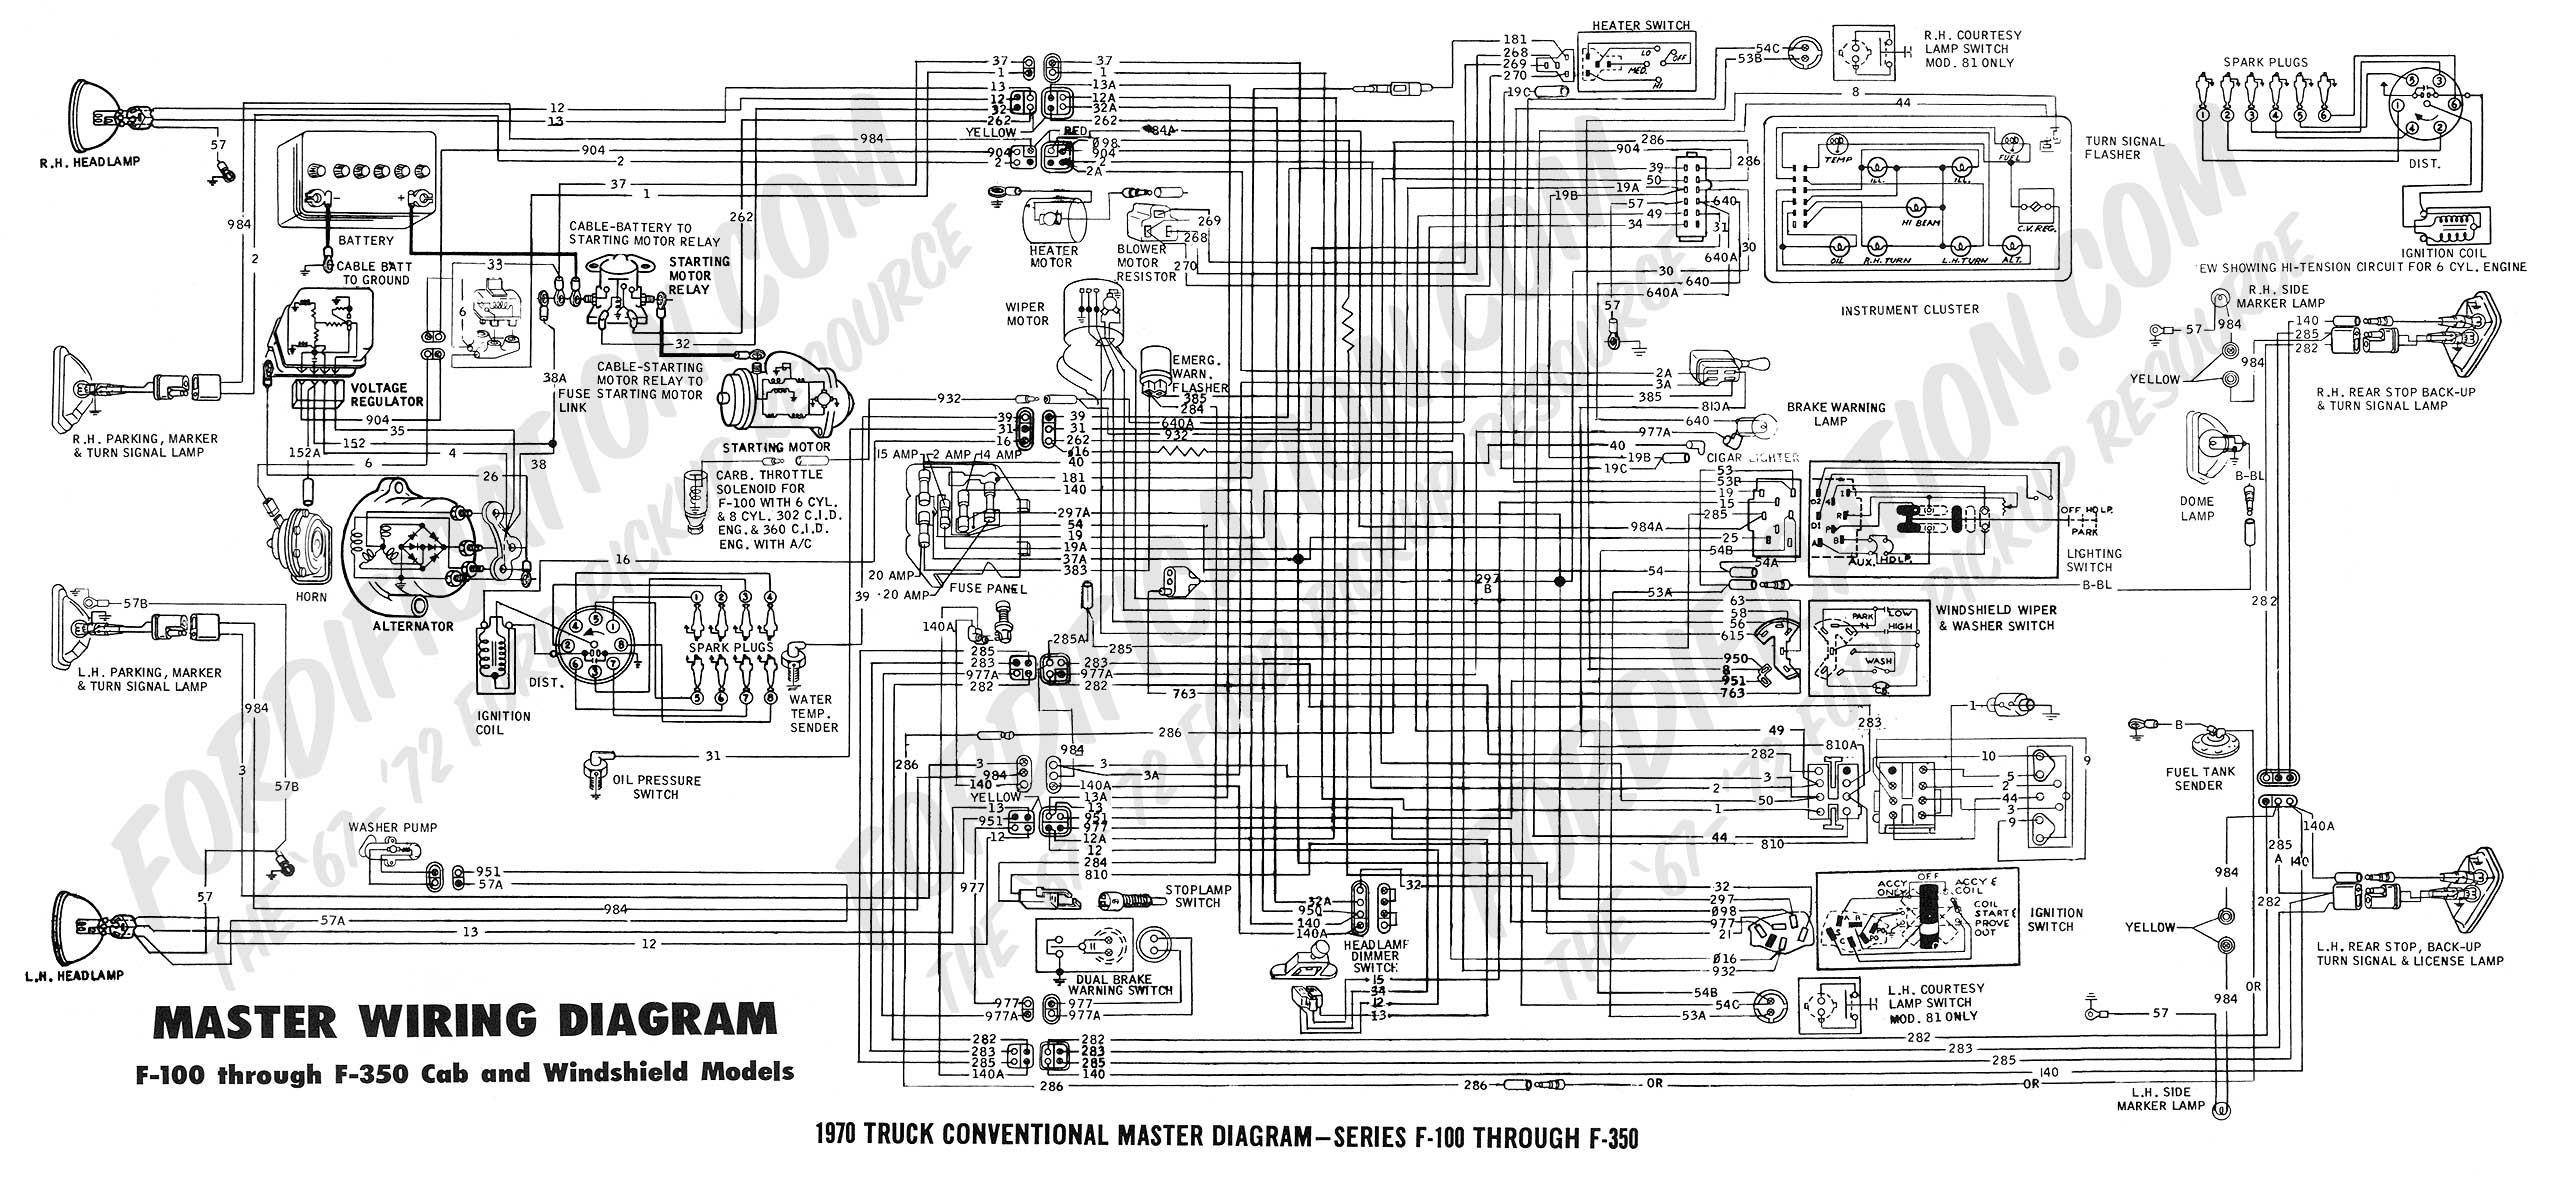 1989 f350 wiring diagram 1989 wiring diagrams